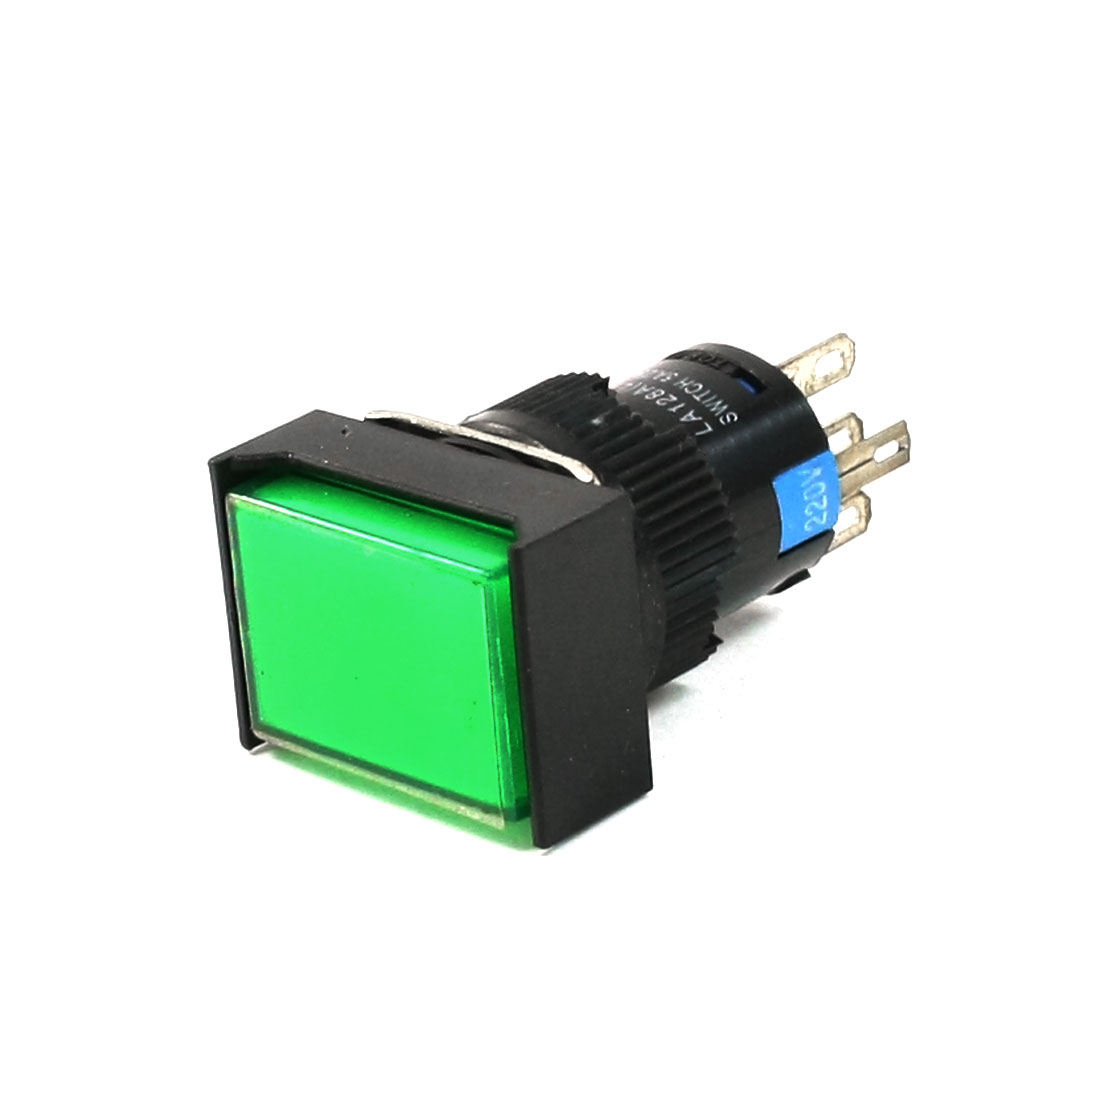 AC 220V LED Light SPDT 1NO 1NC 5-Pin Latching Green Rectangle Push Button Switch